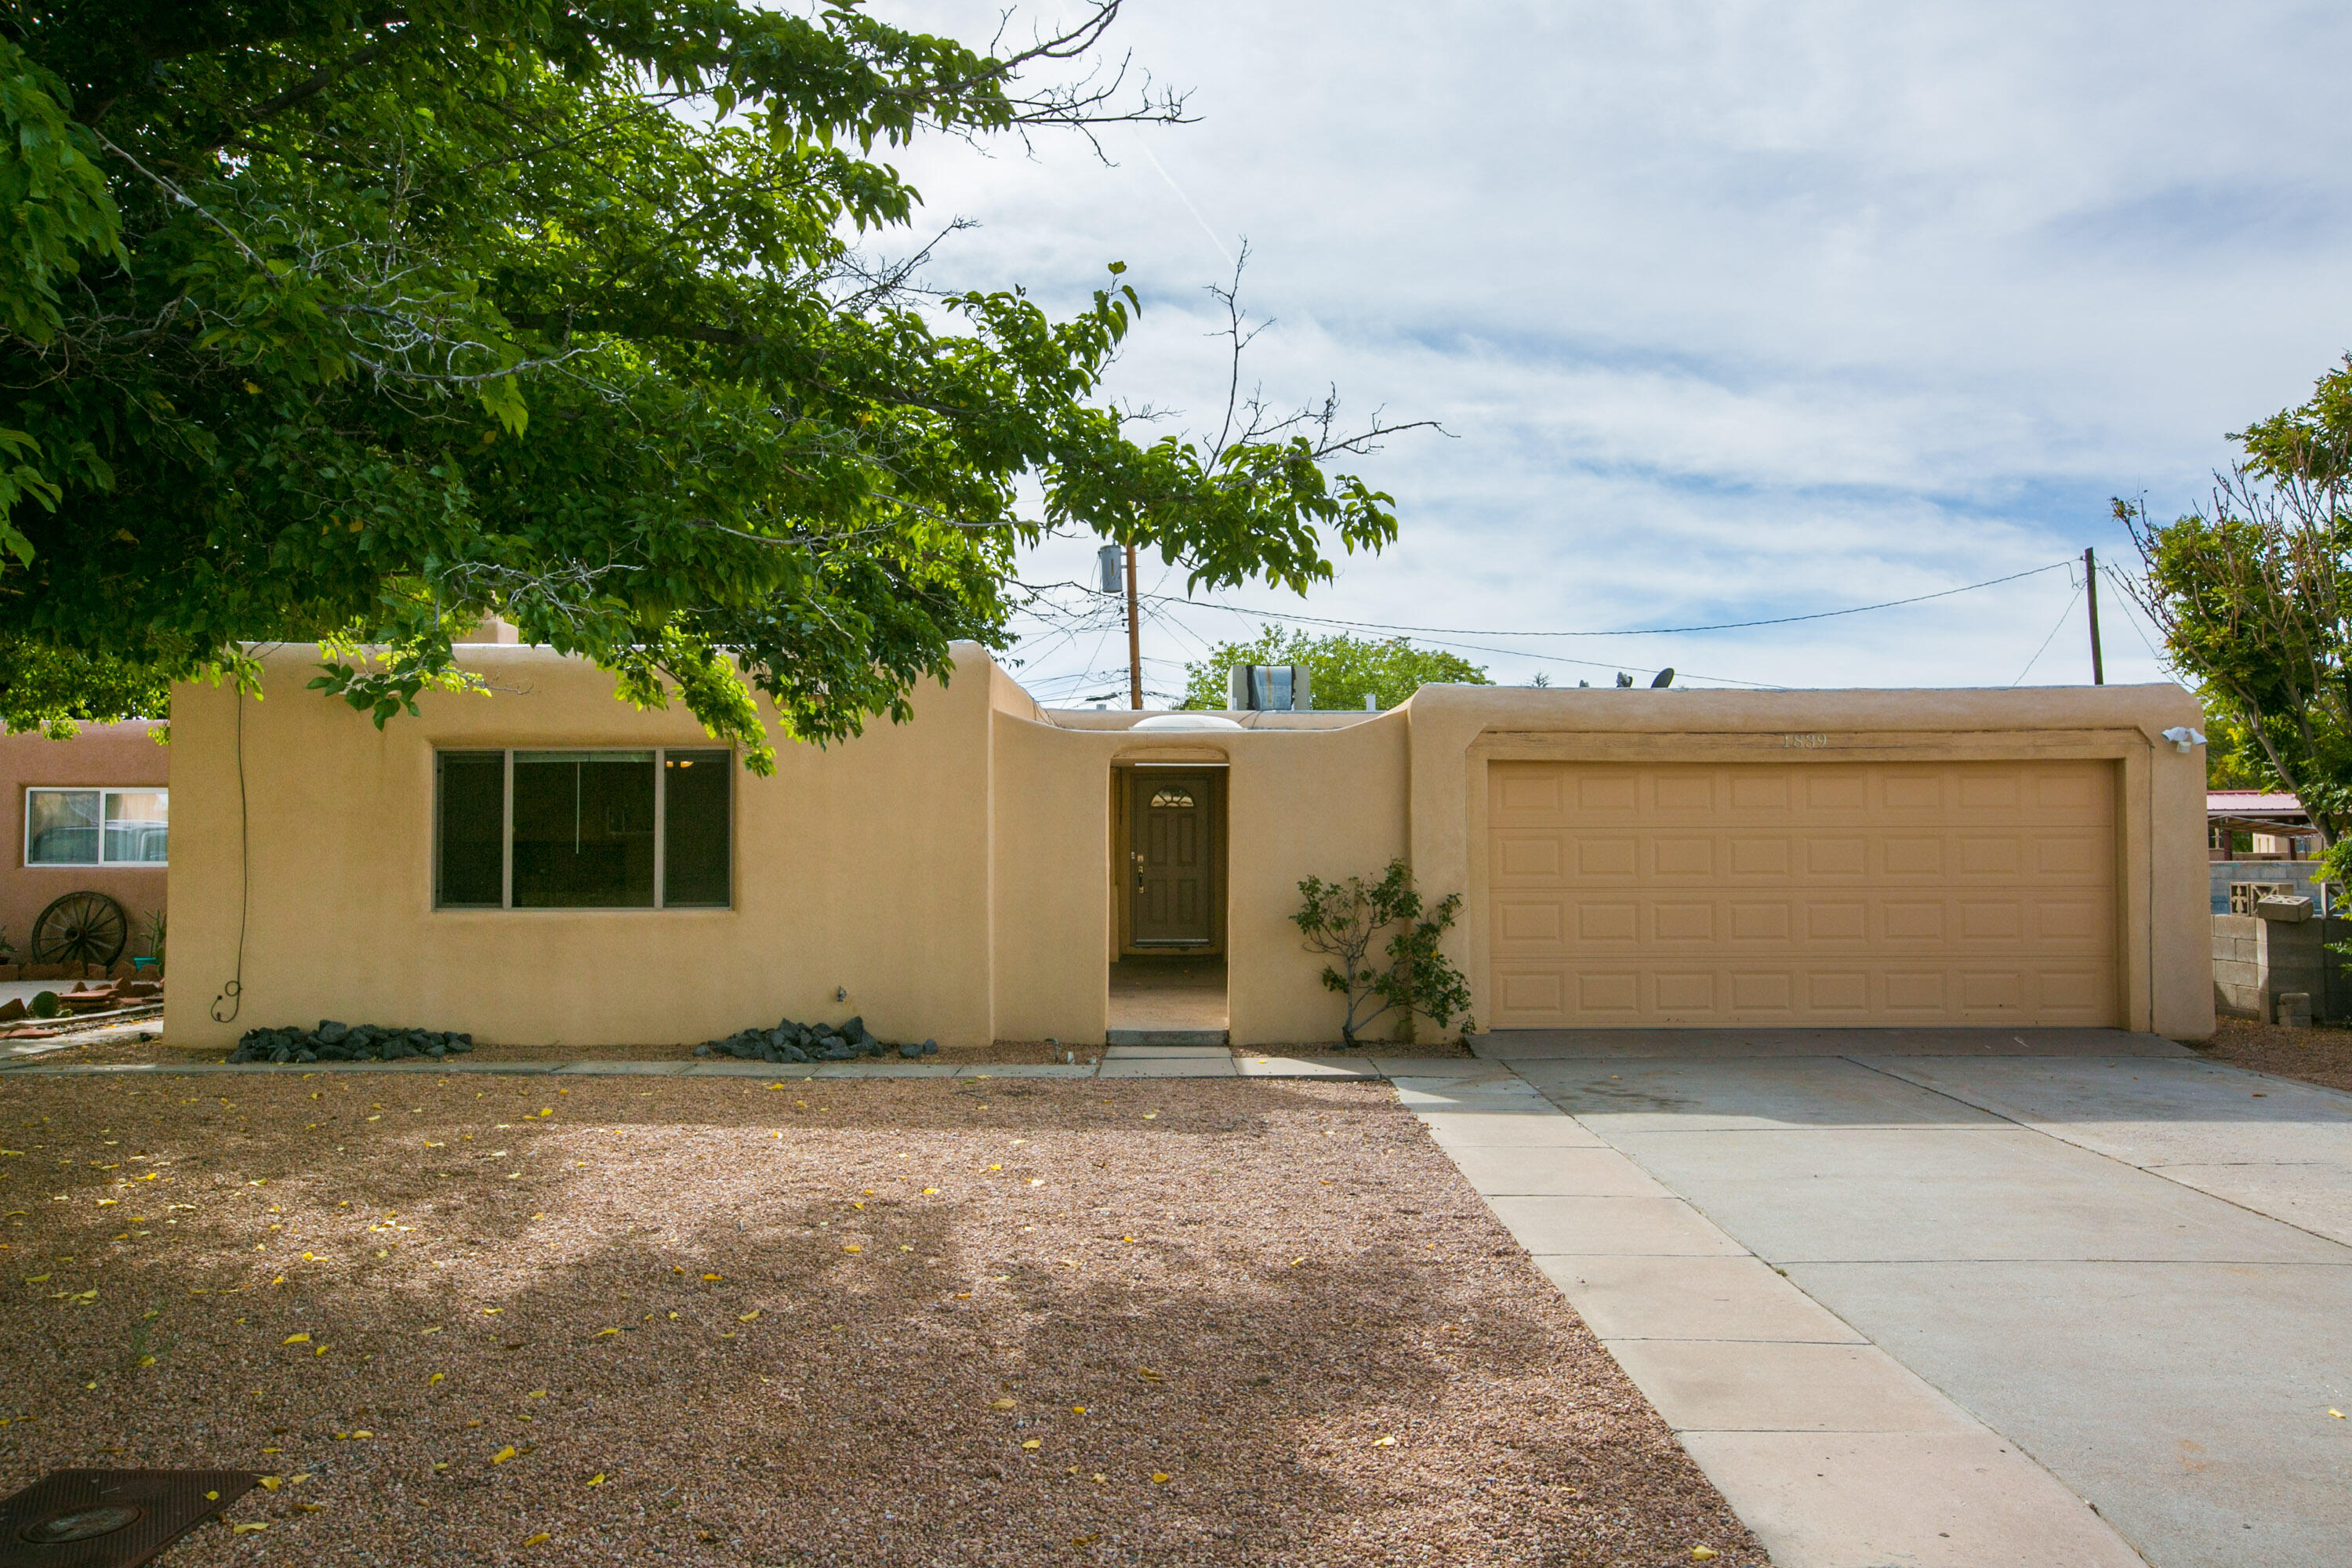 No HOA! This home is equipped with 3 bedrooms, 2 bathrooms, 2 living spaces, stainless steel appliances, kitchen island, custom tile surrounds and backsplash, upgraded vanities, terraced back yard with walled privacy and xeriscaped front yard. Home is selling as is.